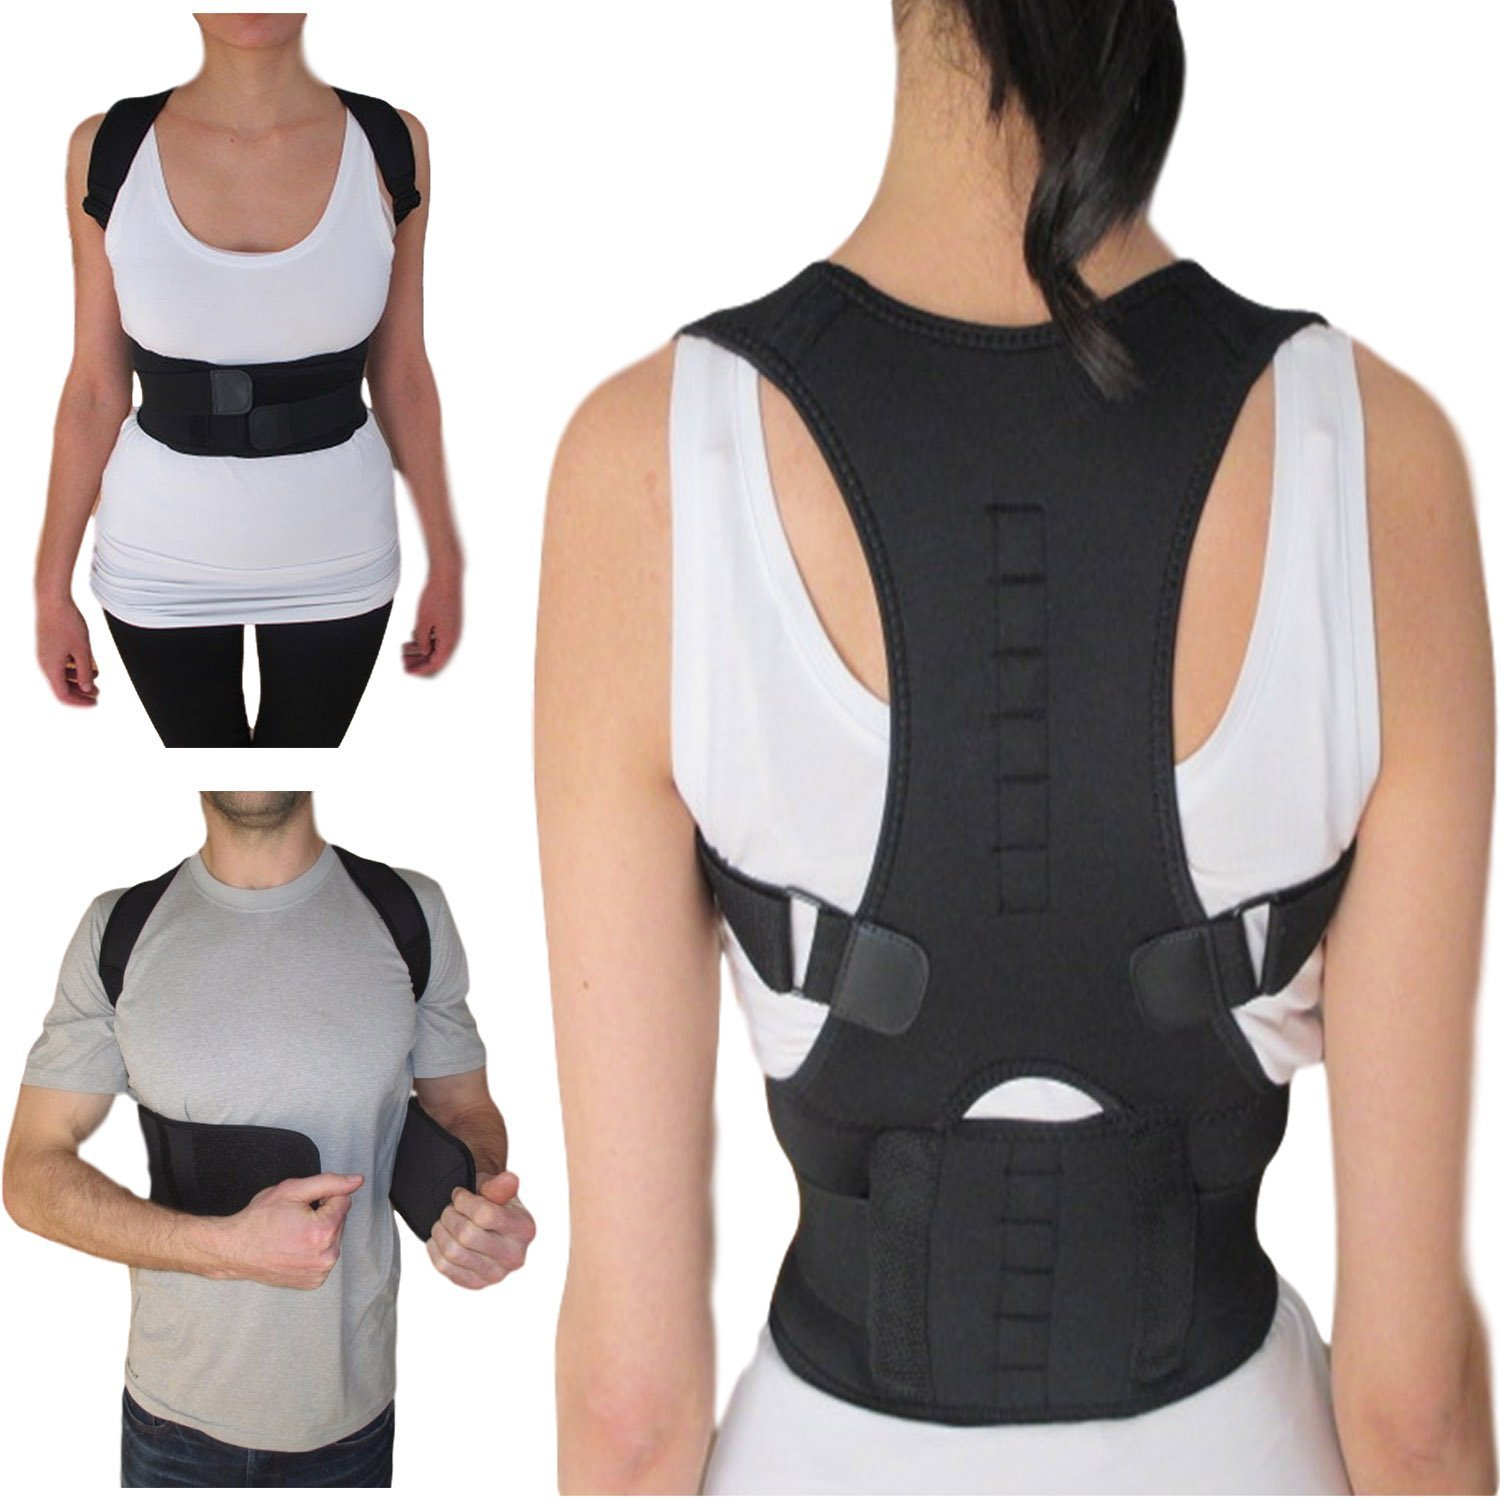 Thoracic Back Brace Support for Back Neck Shoulder Upper Back Pain Relief Perfect Posture Corrector Strap for Cervical Spine Large Extra Large